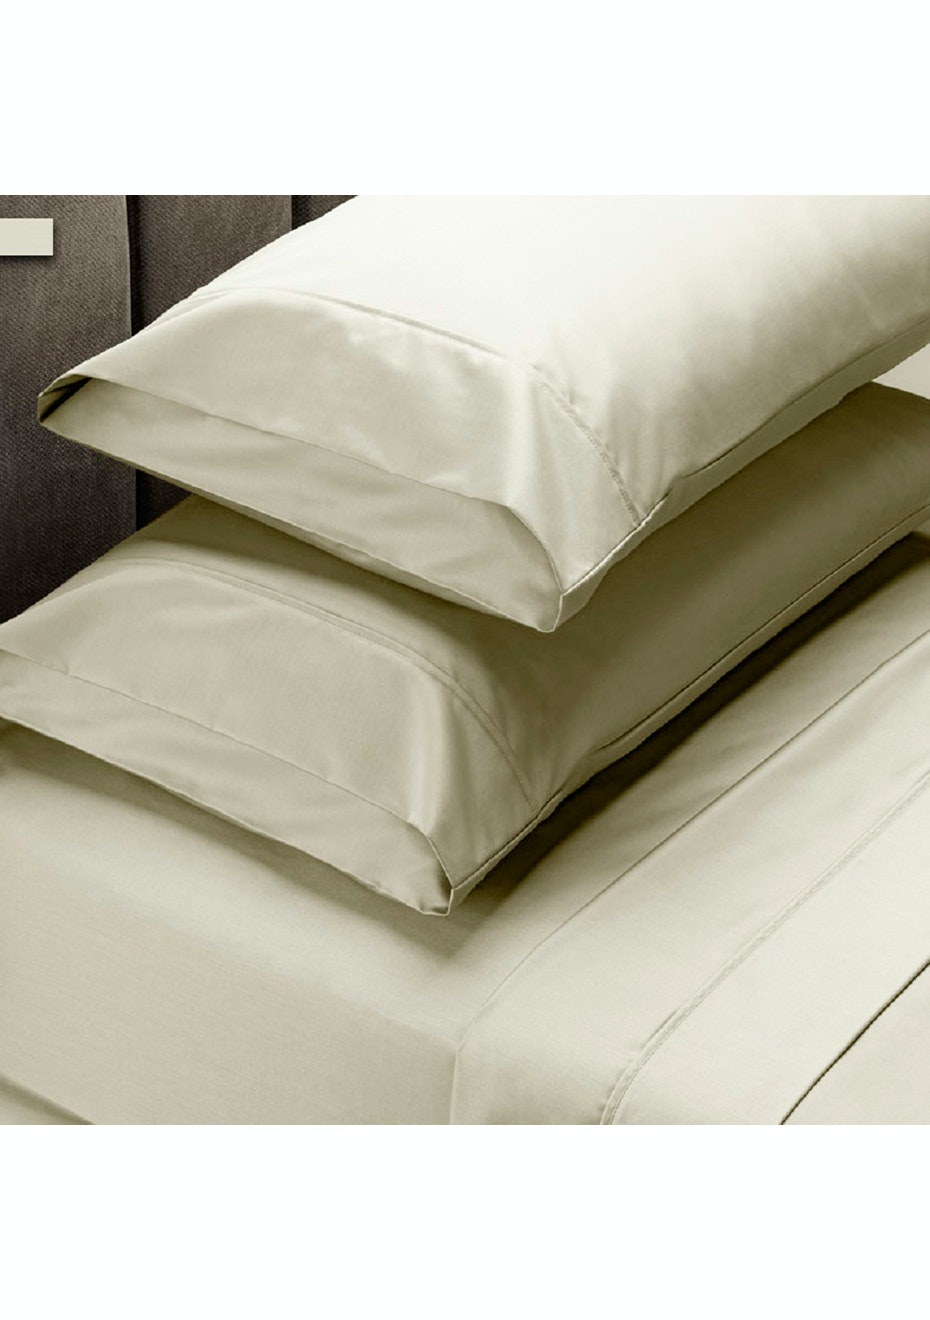 Park Avenue 1000 Thread count 100% Egyptian Cotton Sheet sets Mega Queen - Birch